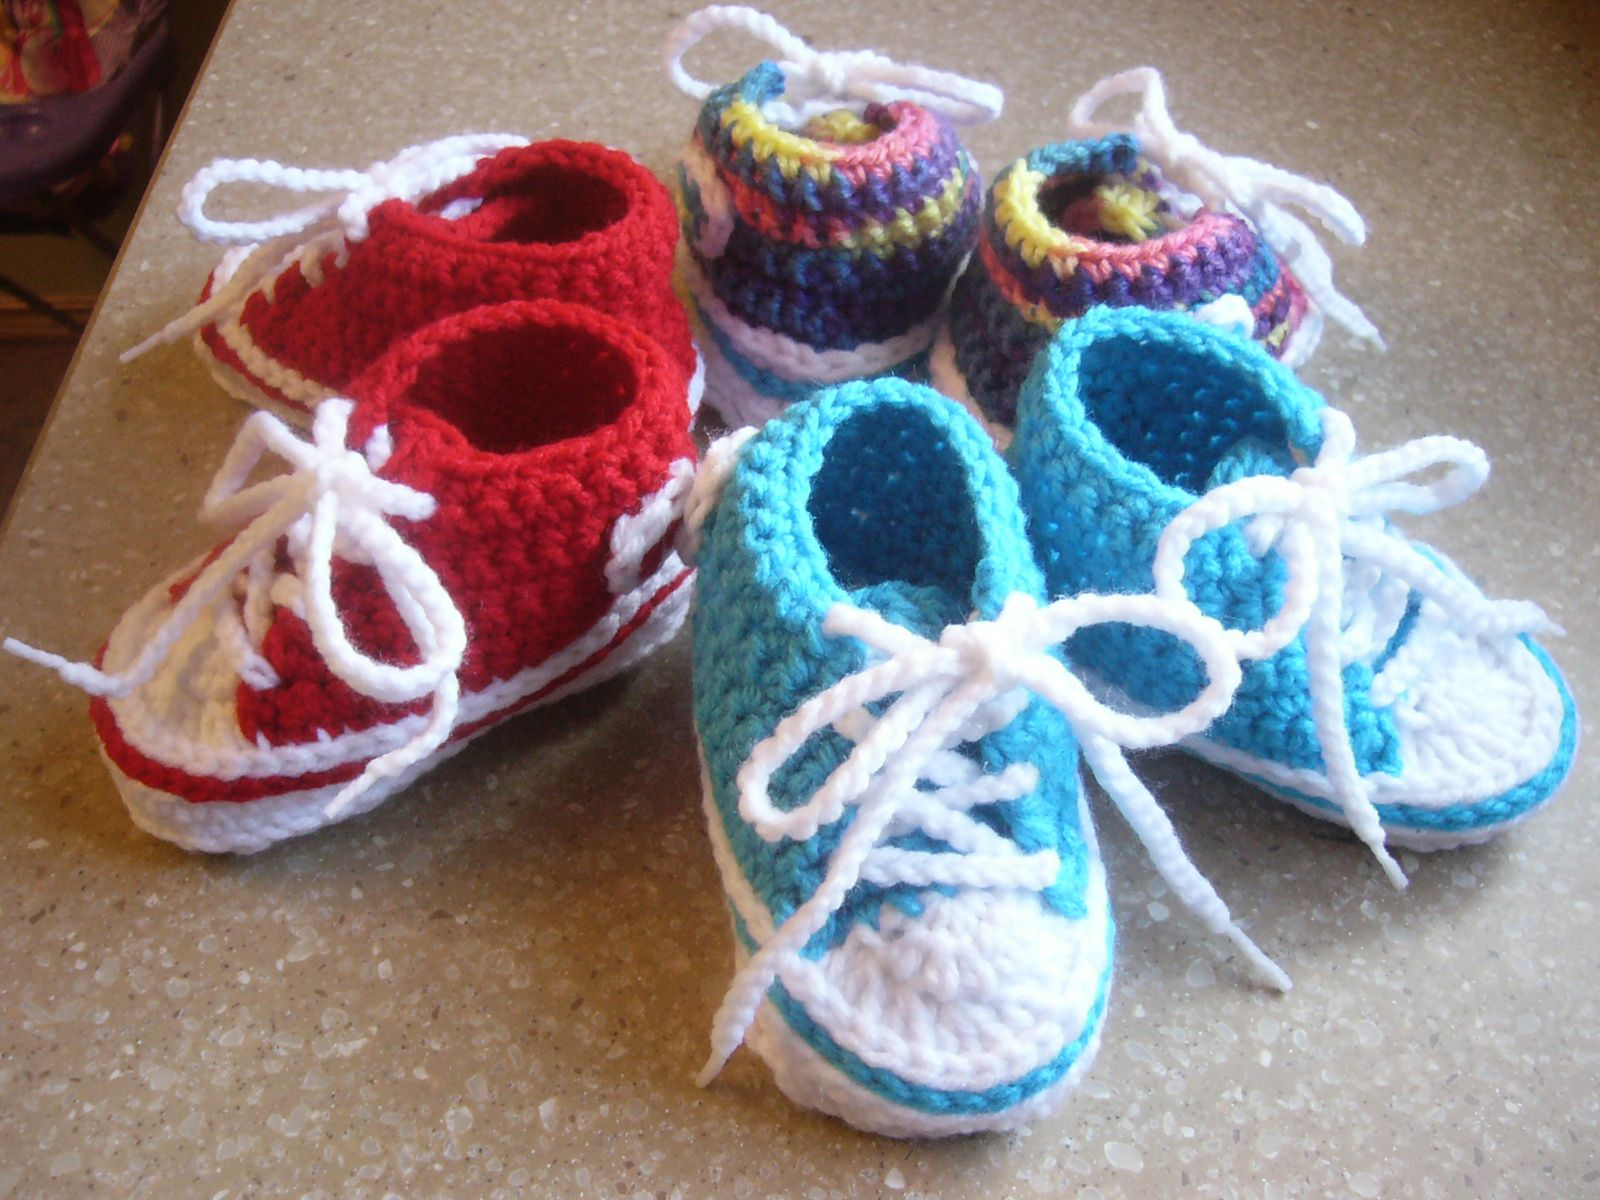 Crochet Baby Converse Sneakers By Suzanne Resaul - Free Crochet ...